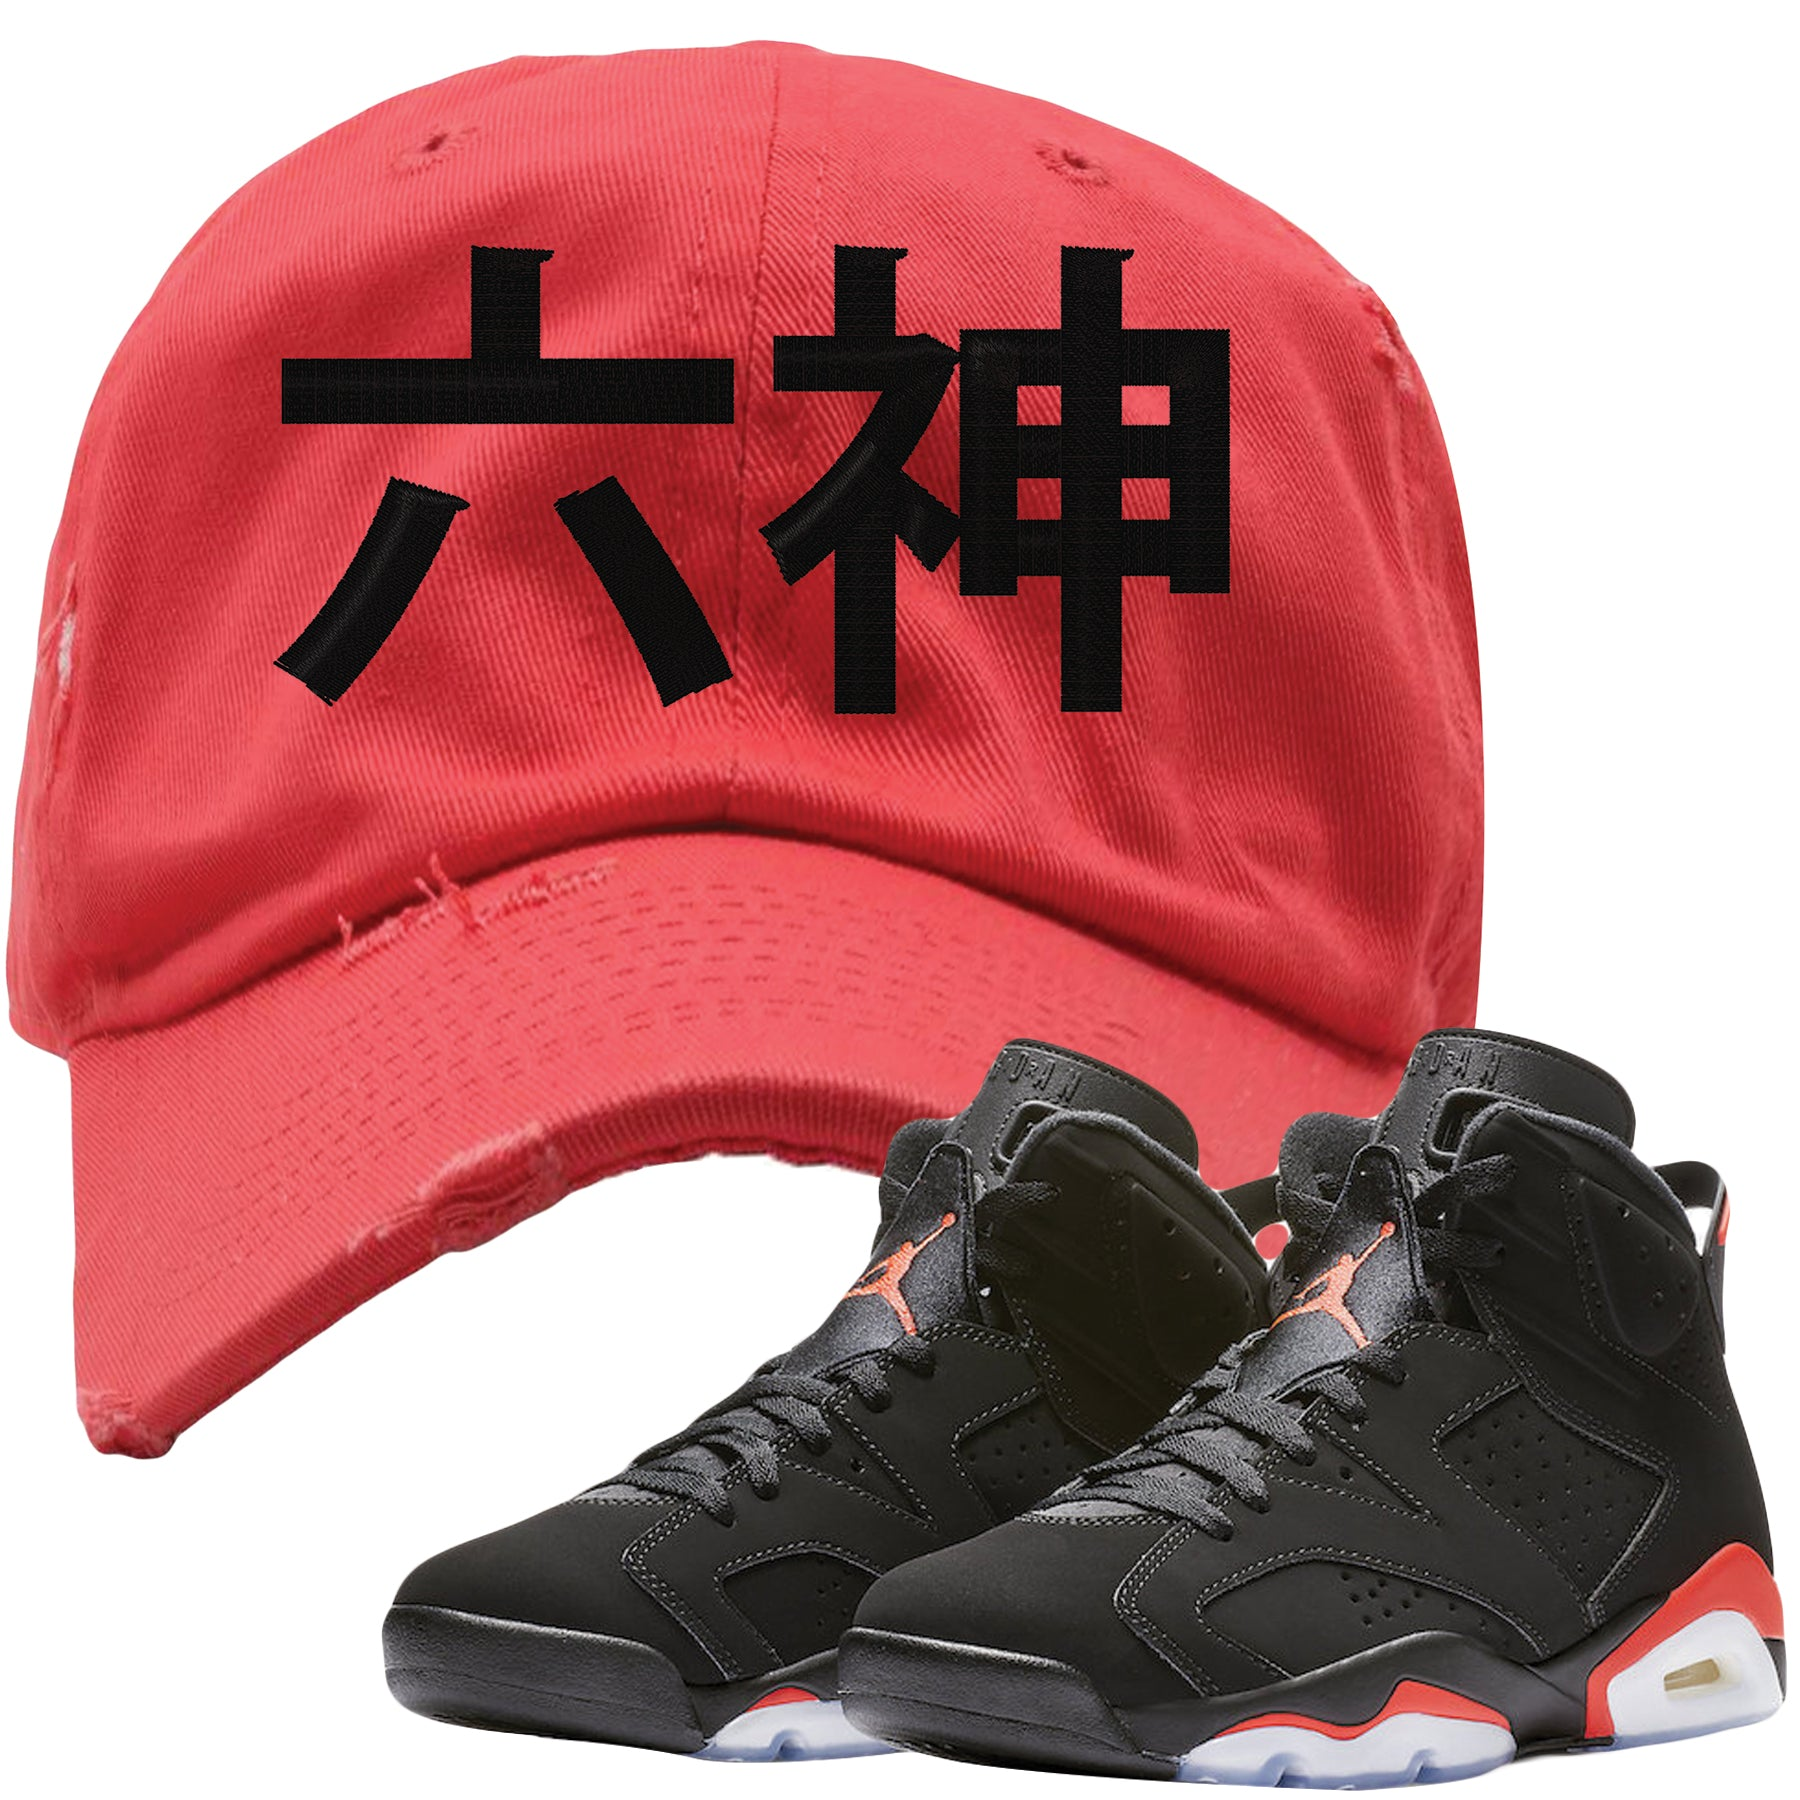 a1b1594f2802b0 The Jordan 6 Infrared Distressed Dad Hat is custom designed to perfectly  match the retro Jordan